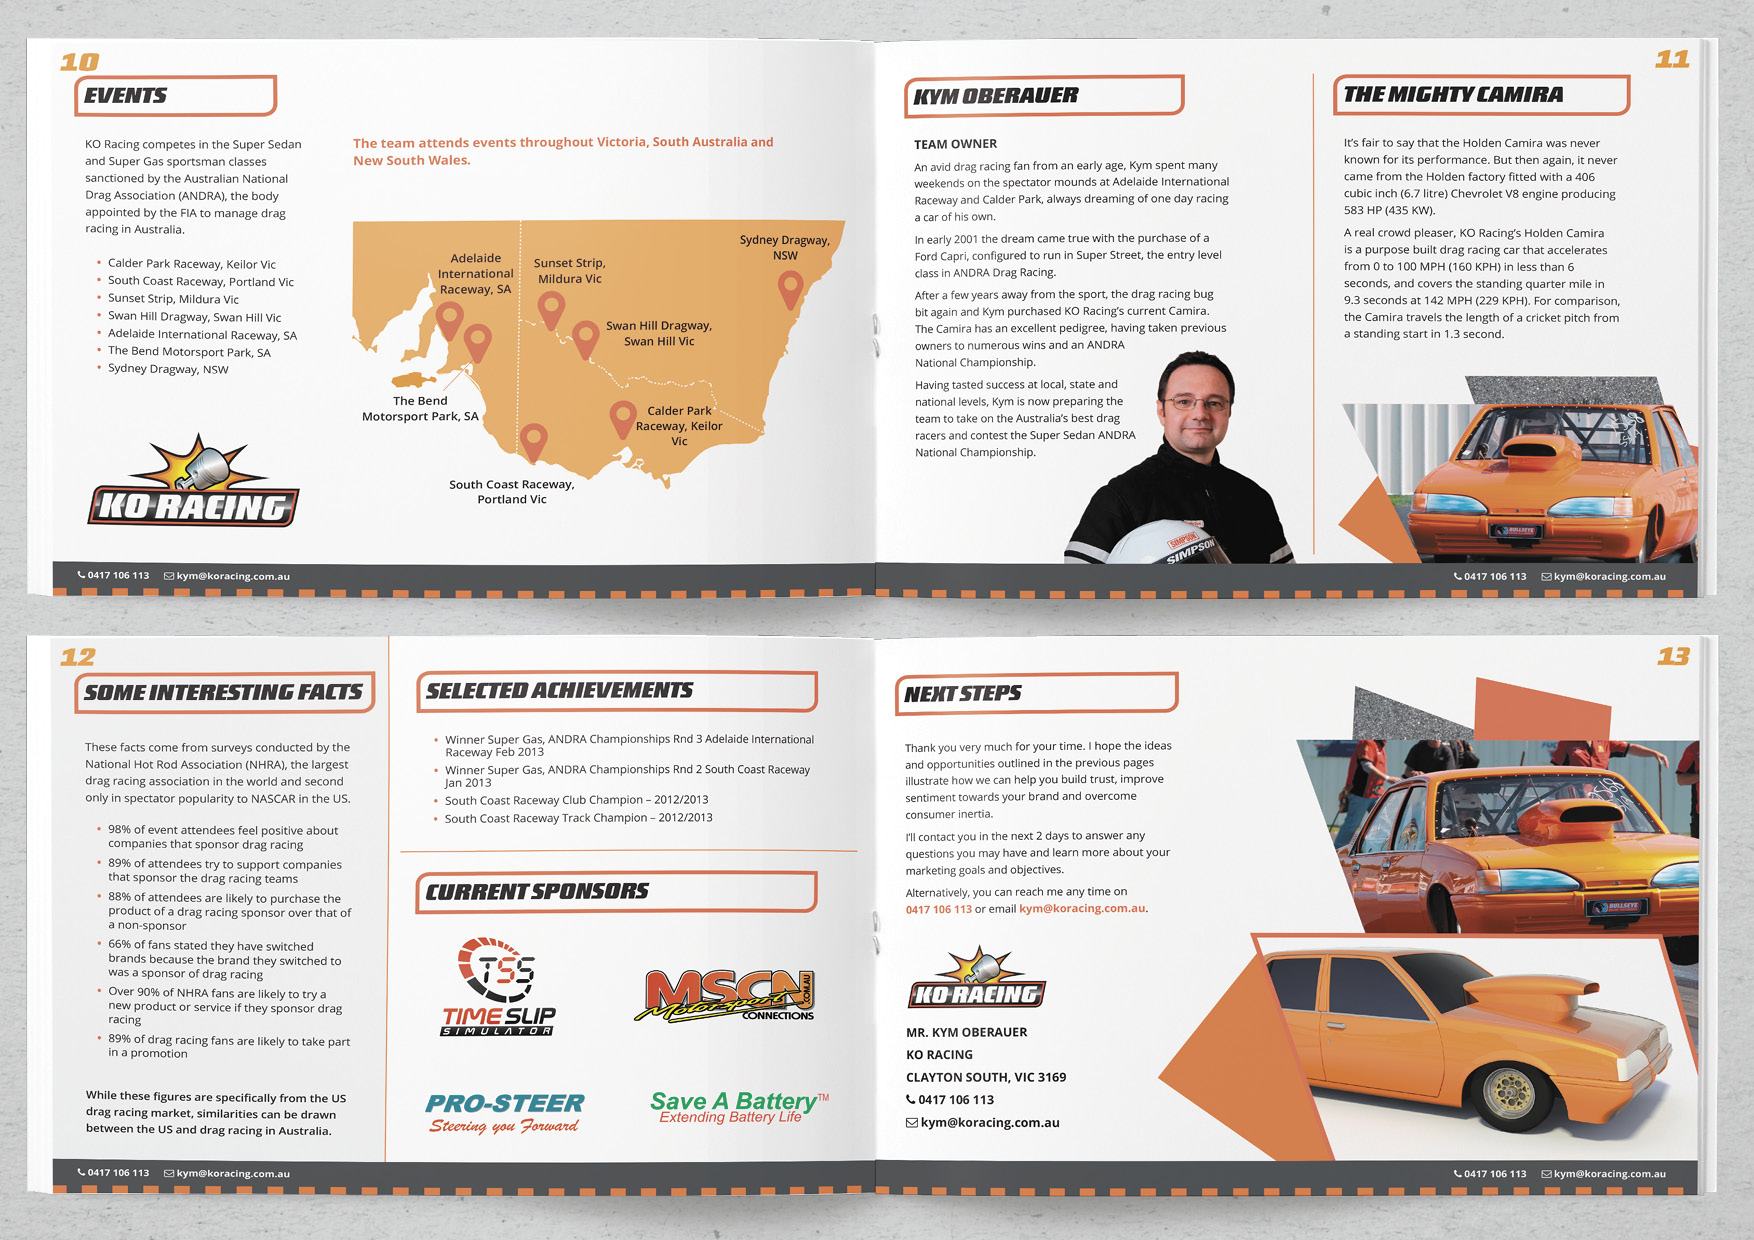 bespoke pitch deck presentation design for the car racing industry as a sponsorship package